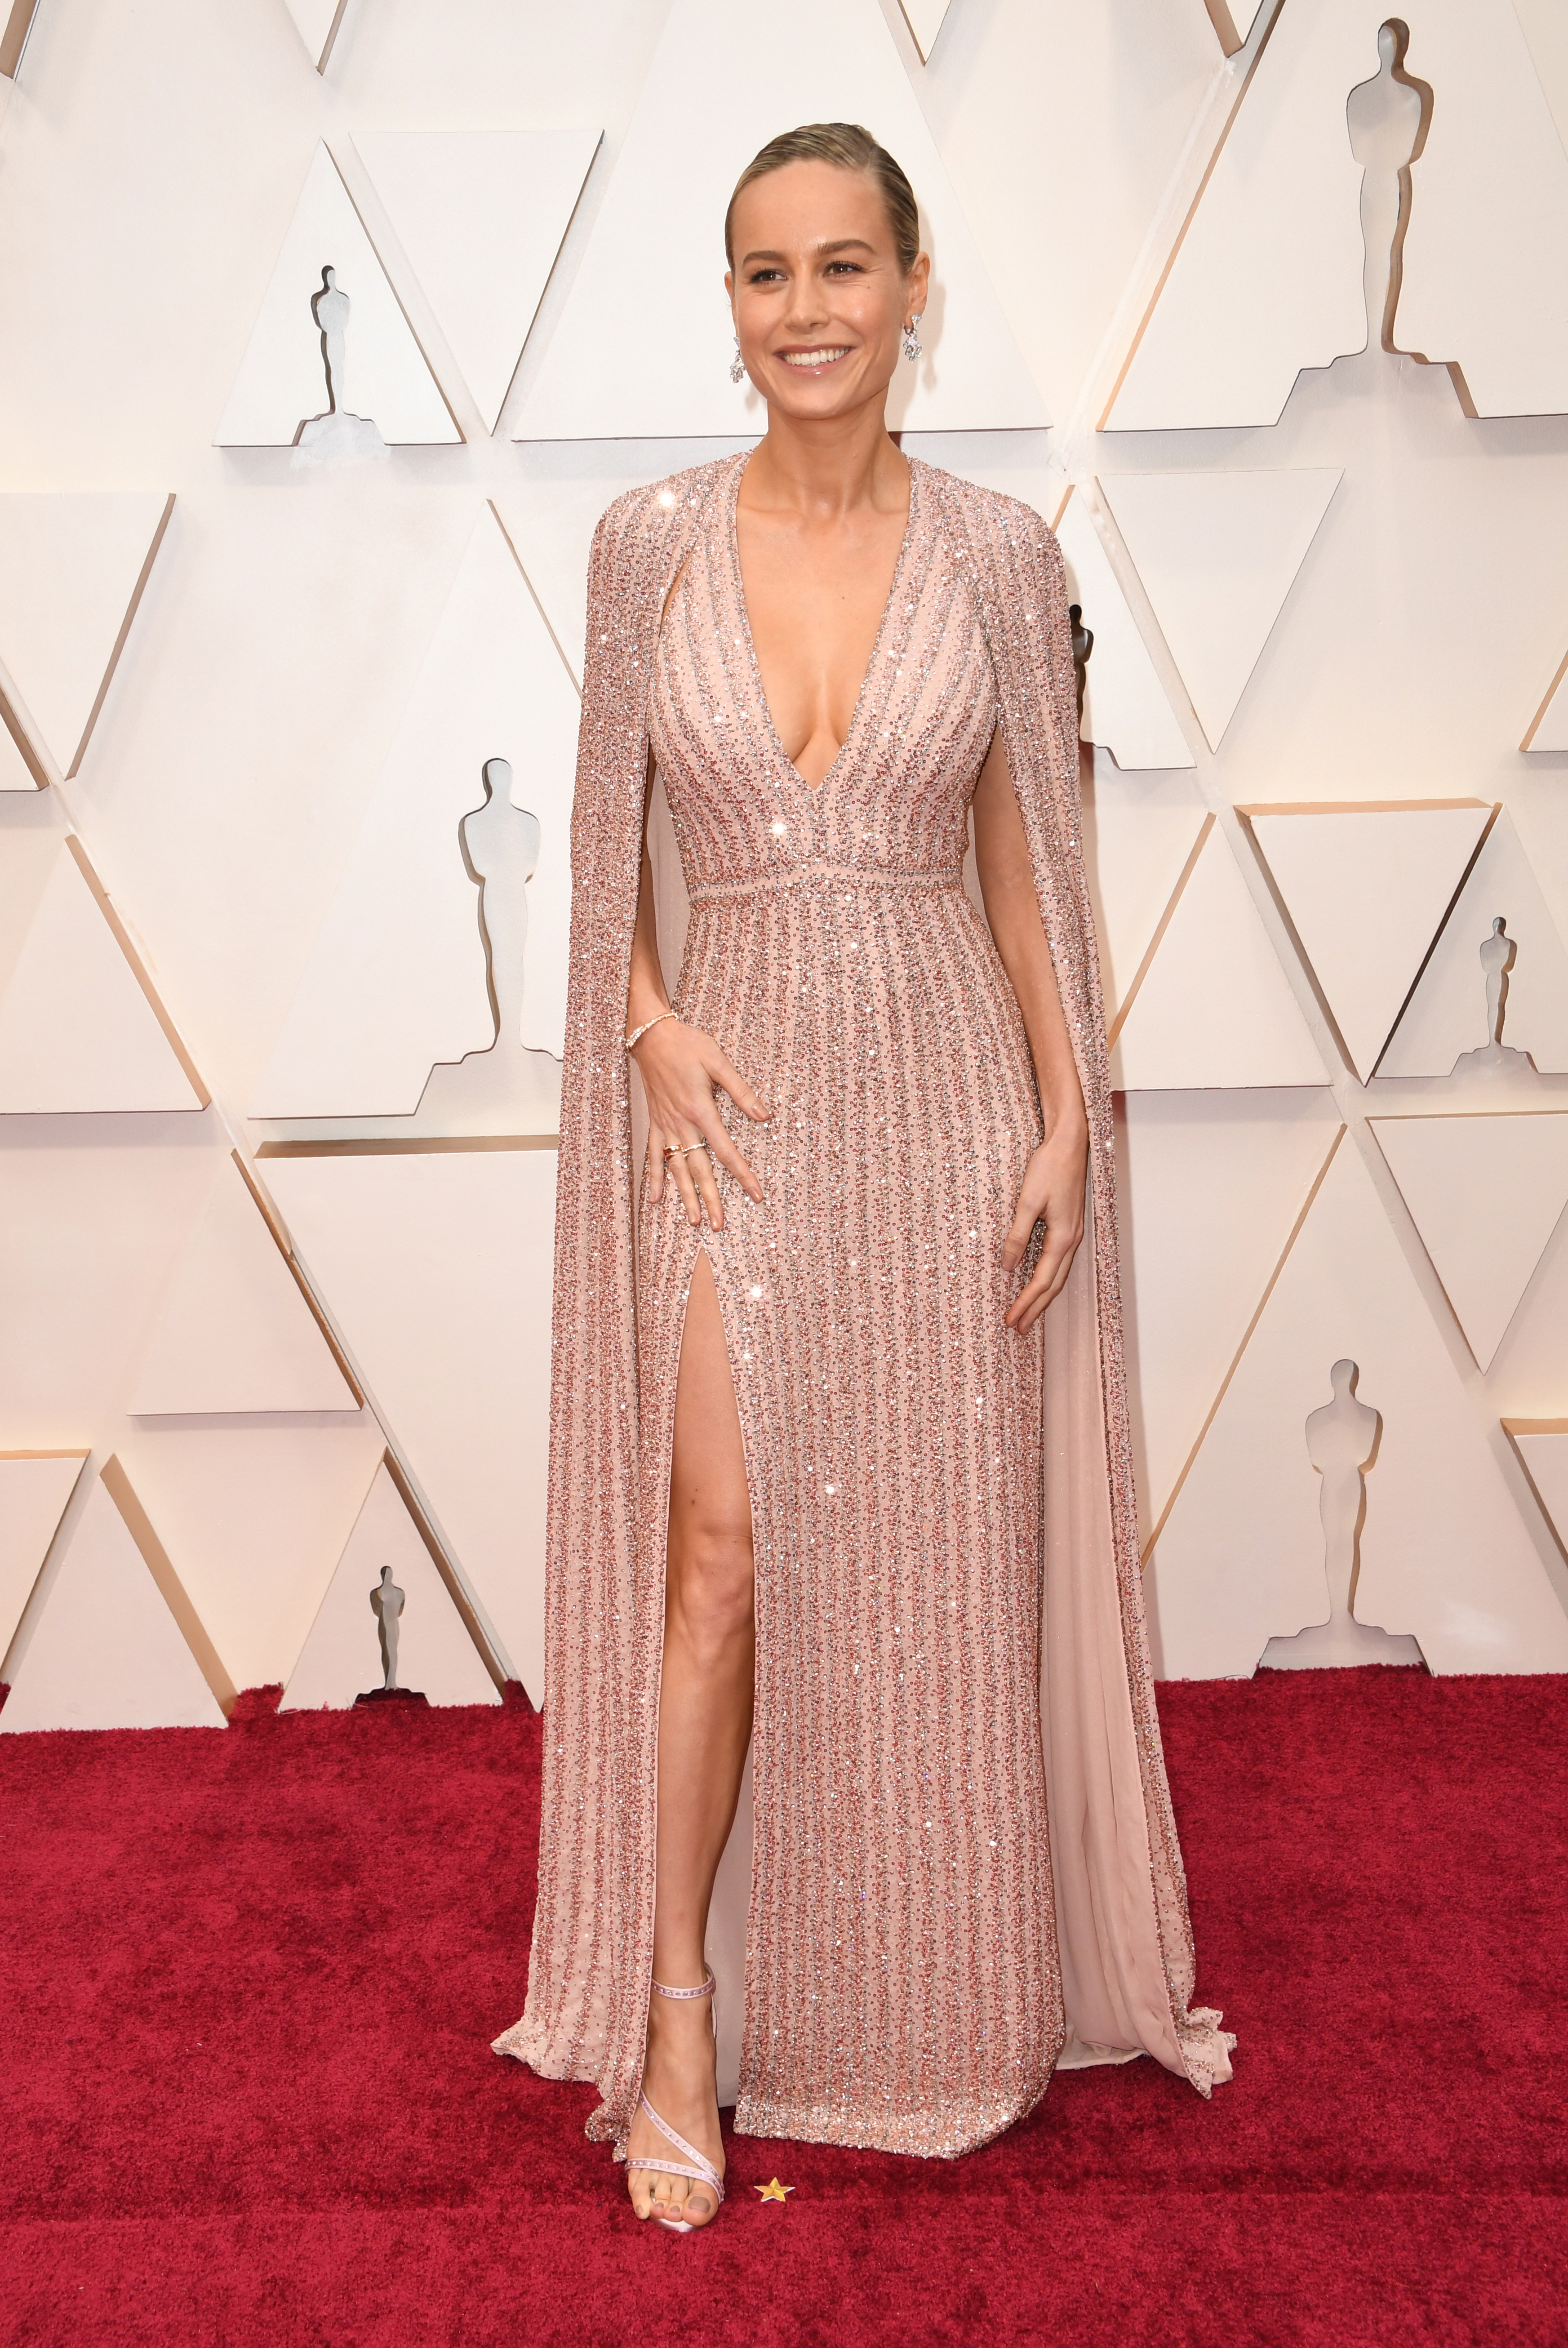 brie larson, oscars, meest sexy rode loper outfits, looks, oscars 2020